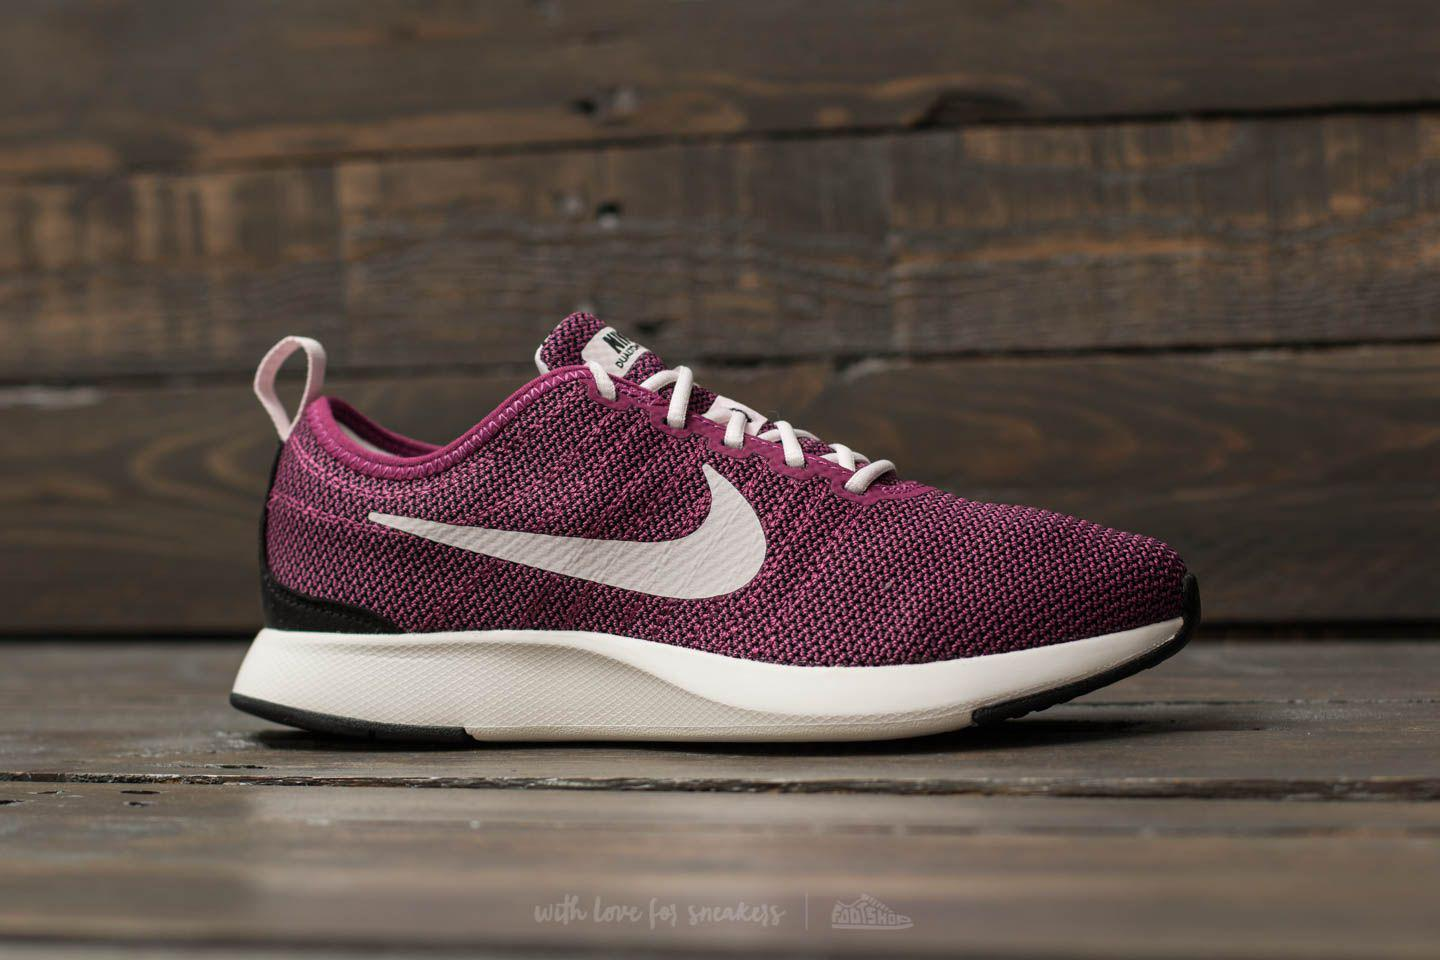 Lyst - Nike Dualtone Racer (gs) Tea Berry  Pearl Pink-black in Pink 4bde048c7a2e